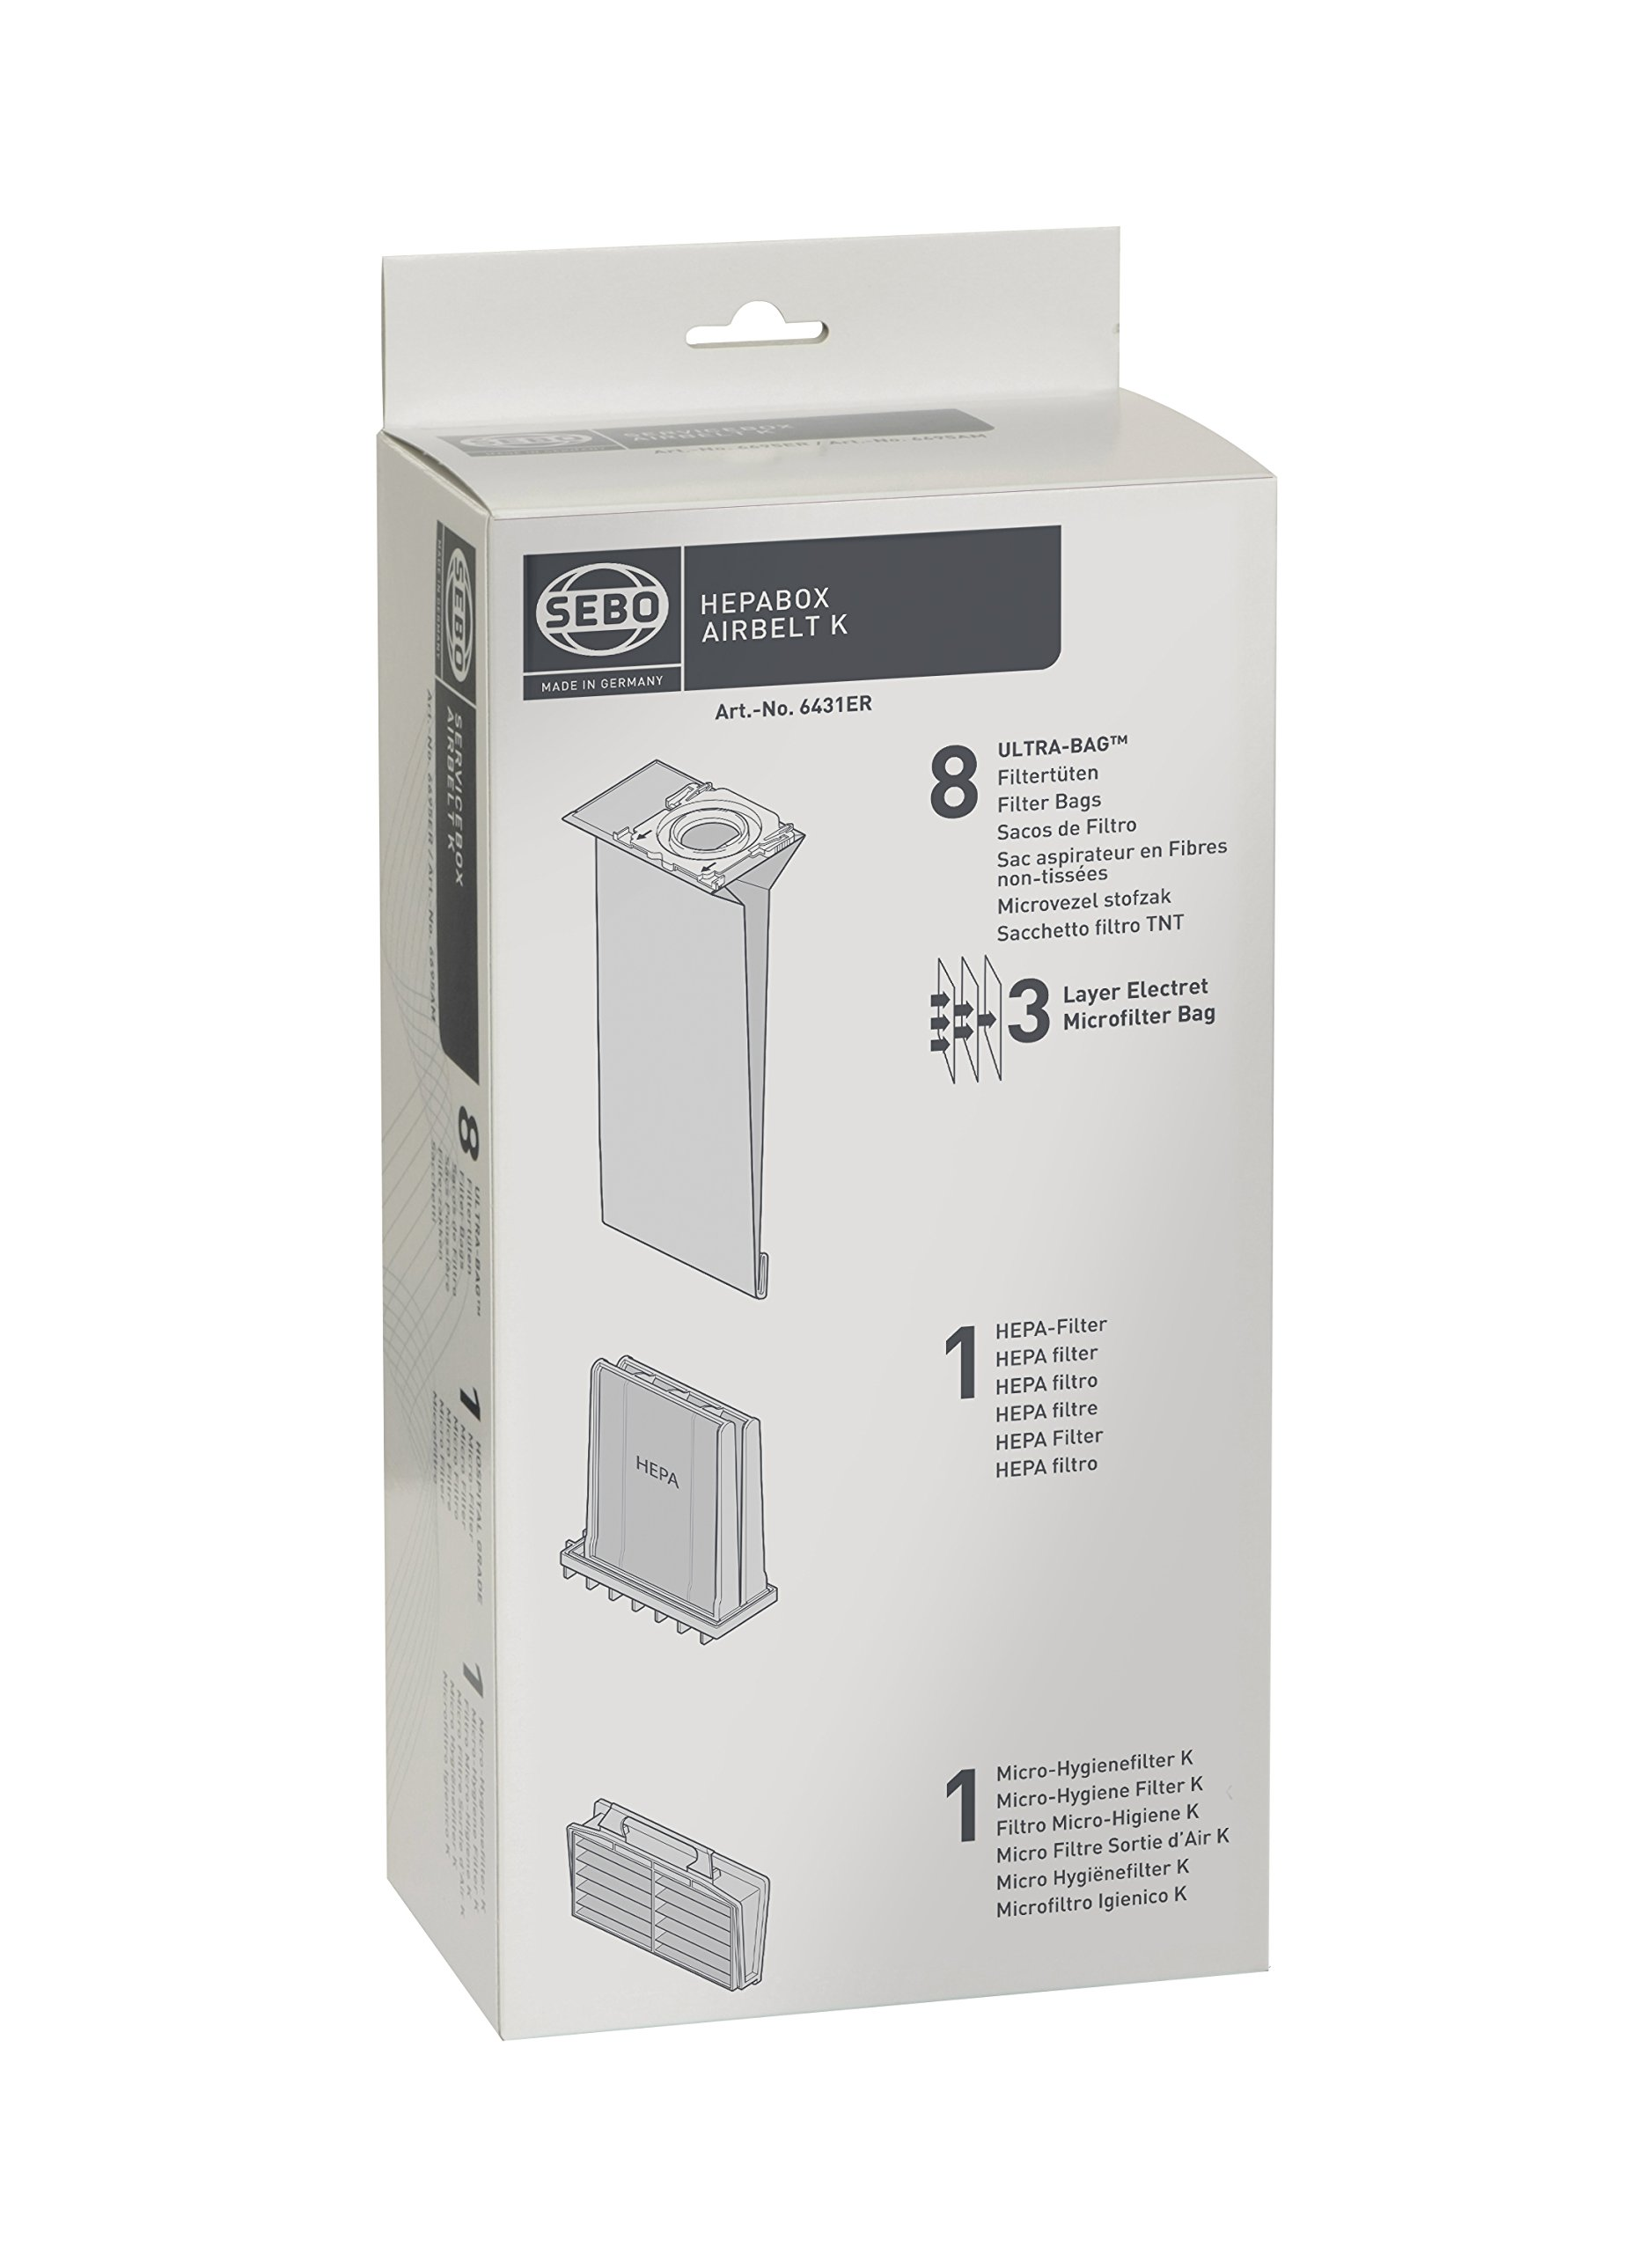 Sebo 6431ER HEPA Service Box for K Series Vacuum with 8 Ultra Bags, Exhaust Filter and HEPA Pre-Motor Microfilter by Sebo